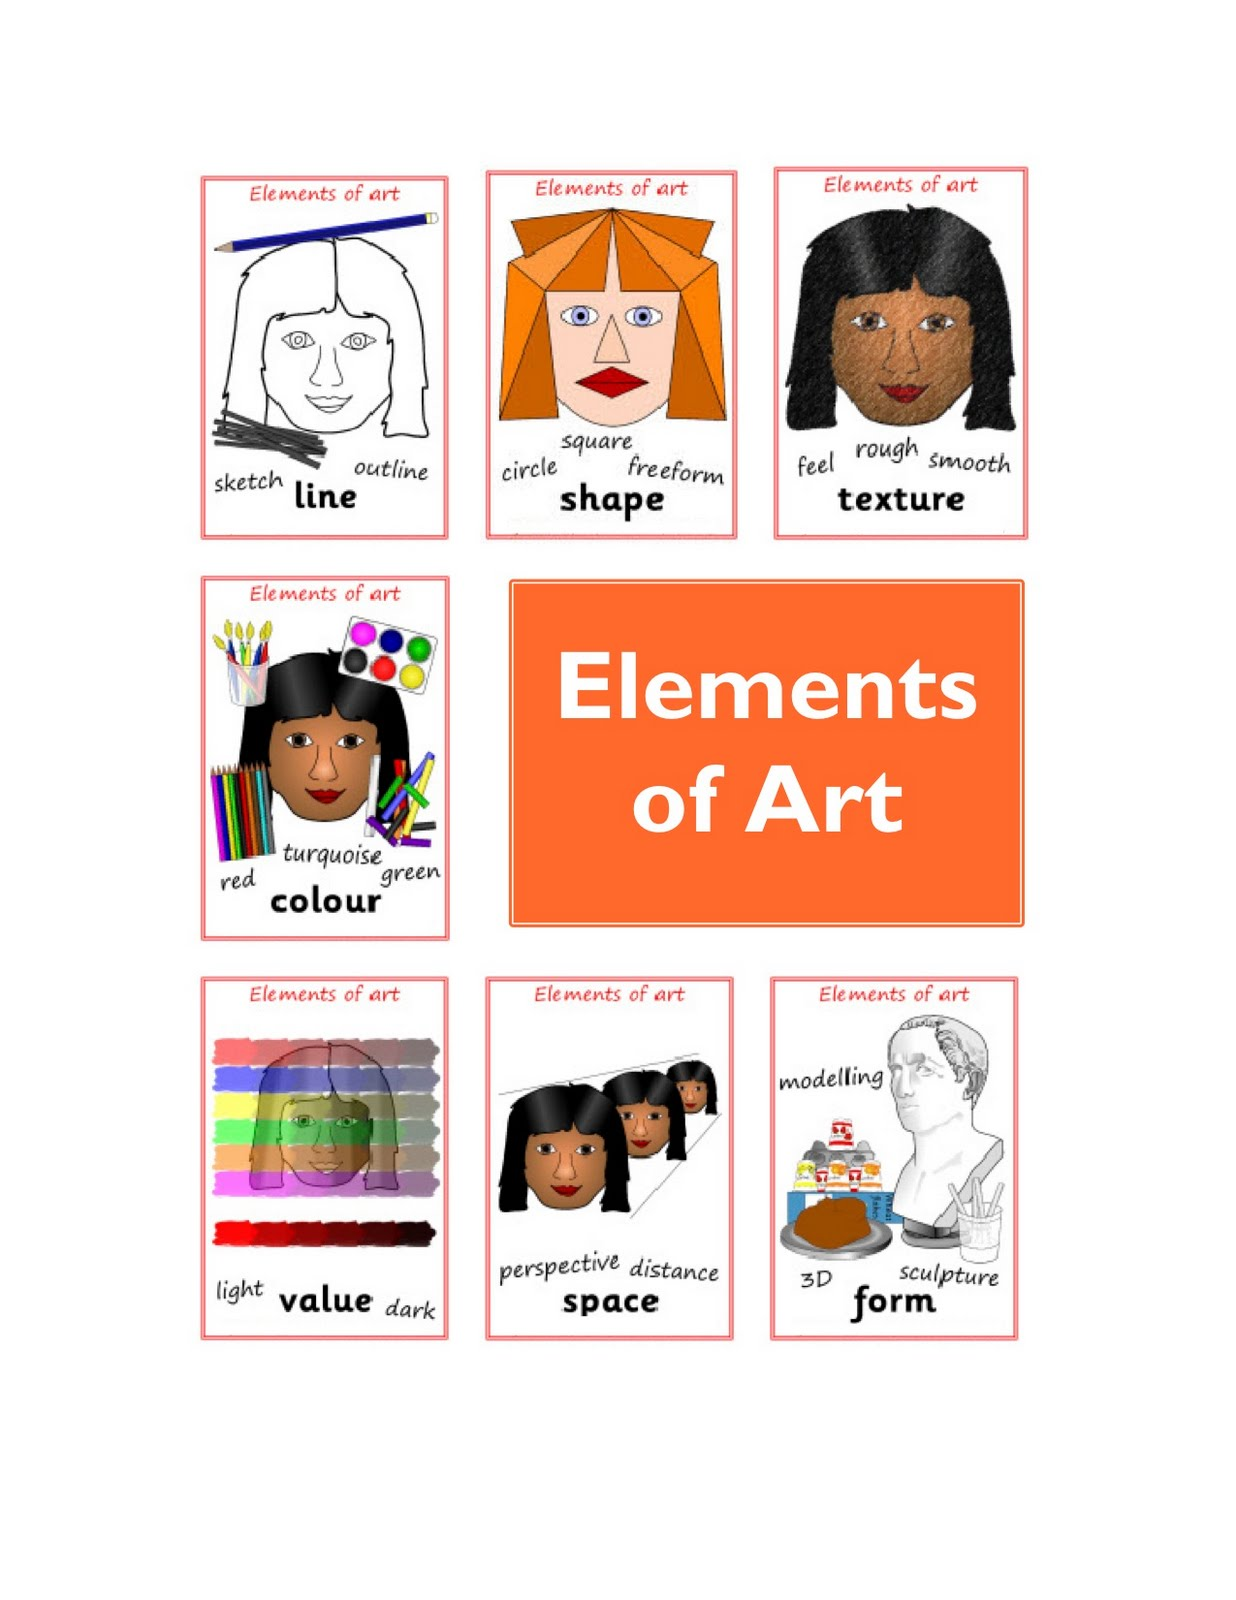 6 Elements Of Art : Making our mark the elements of art